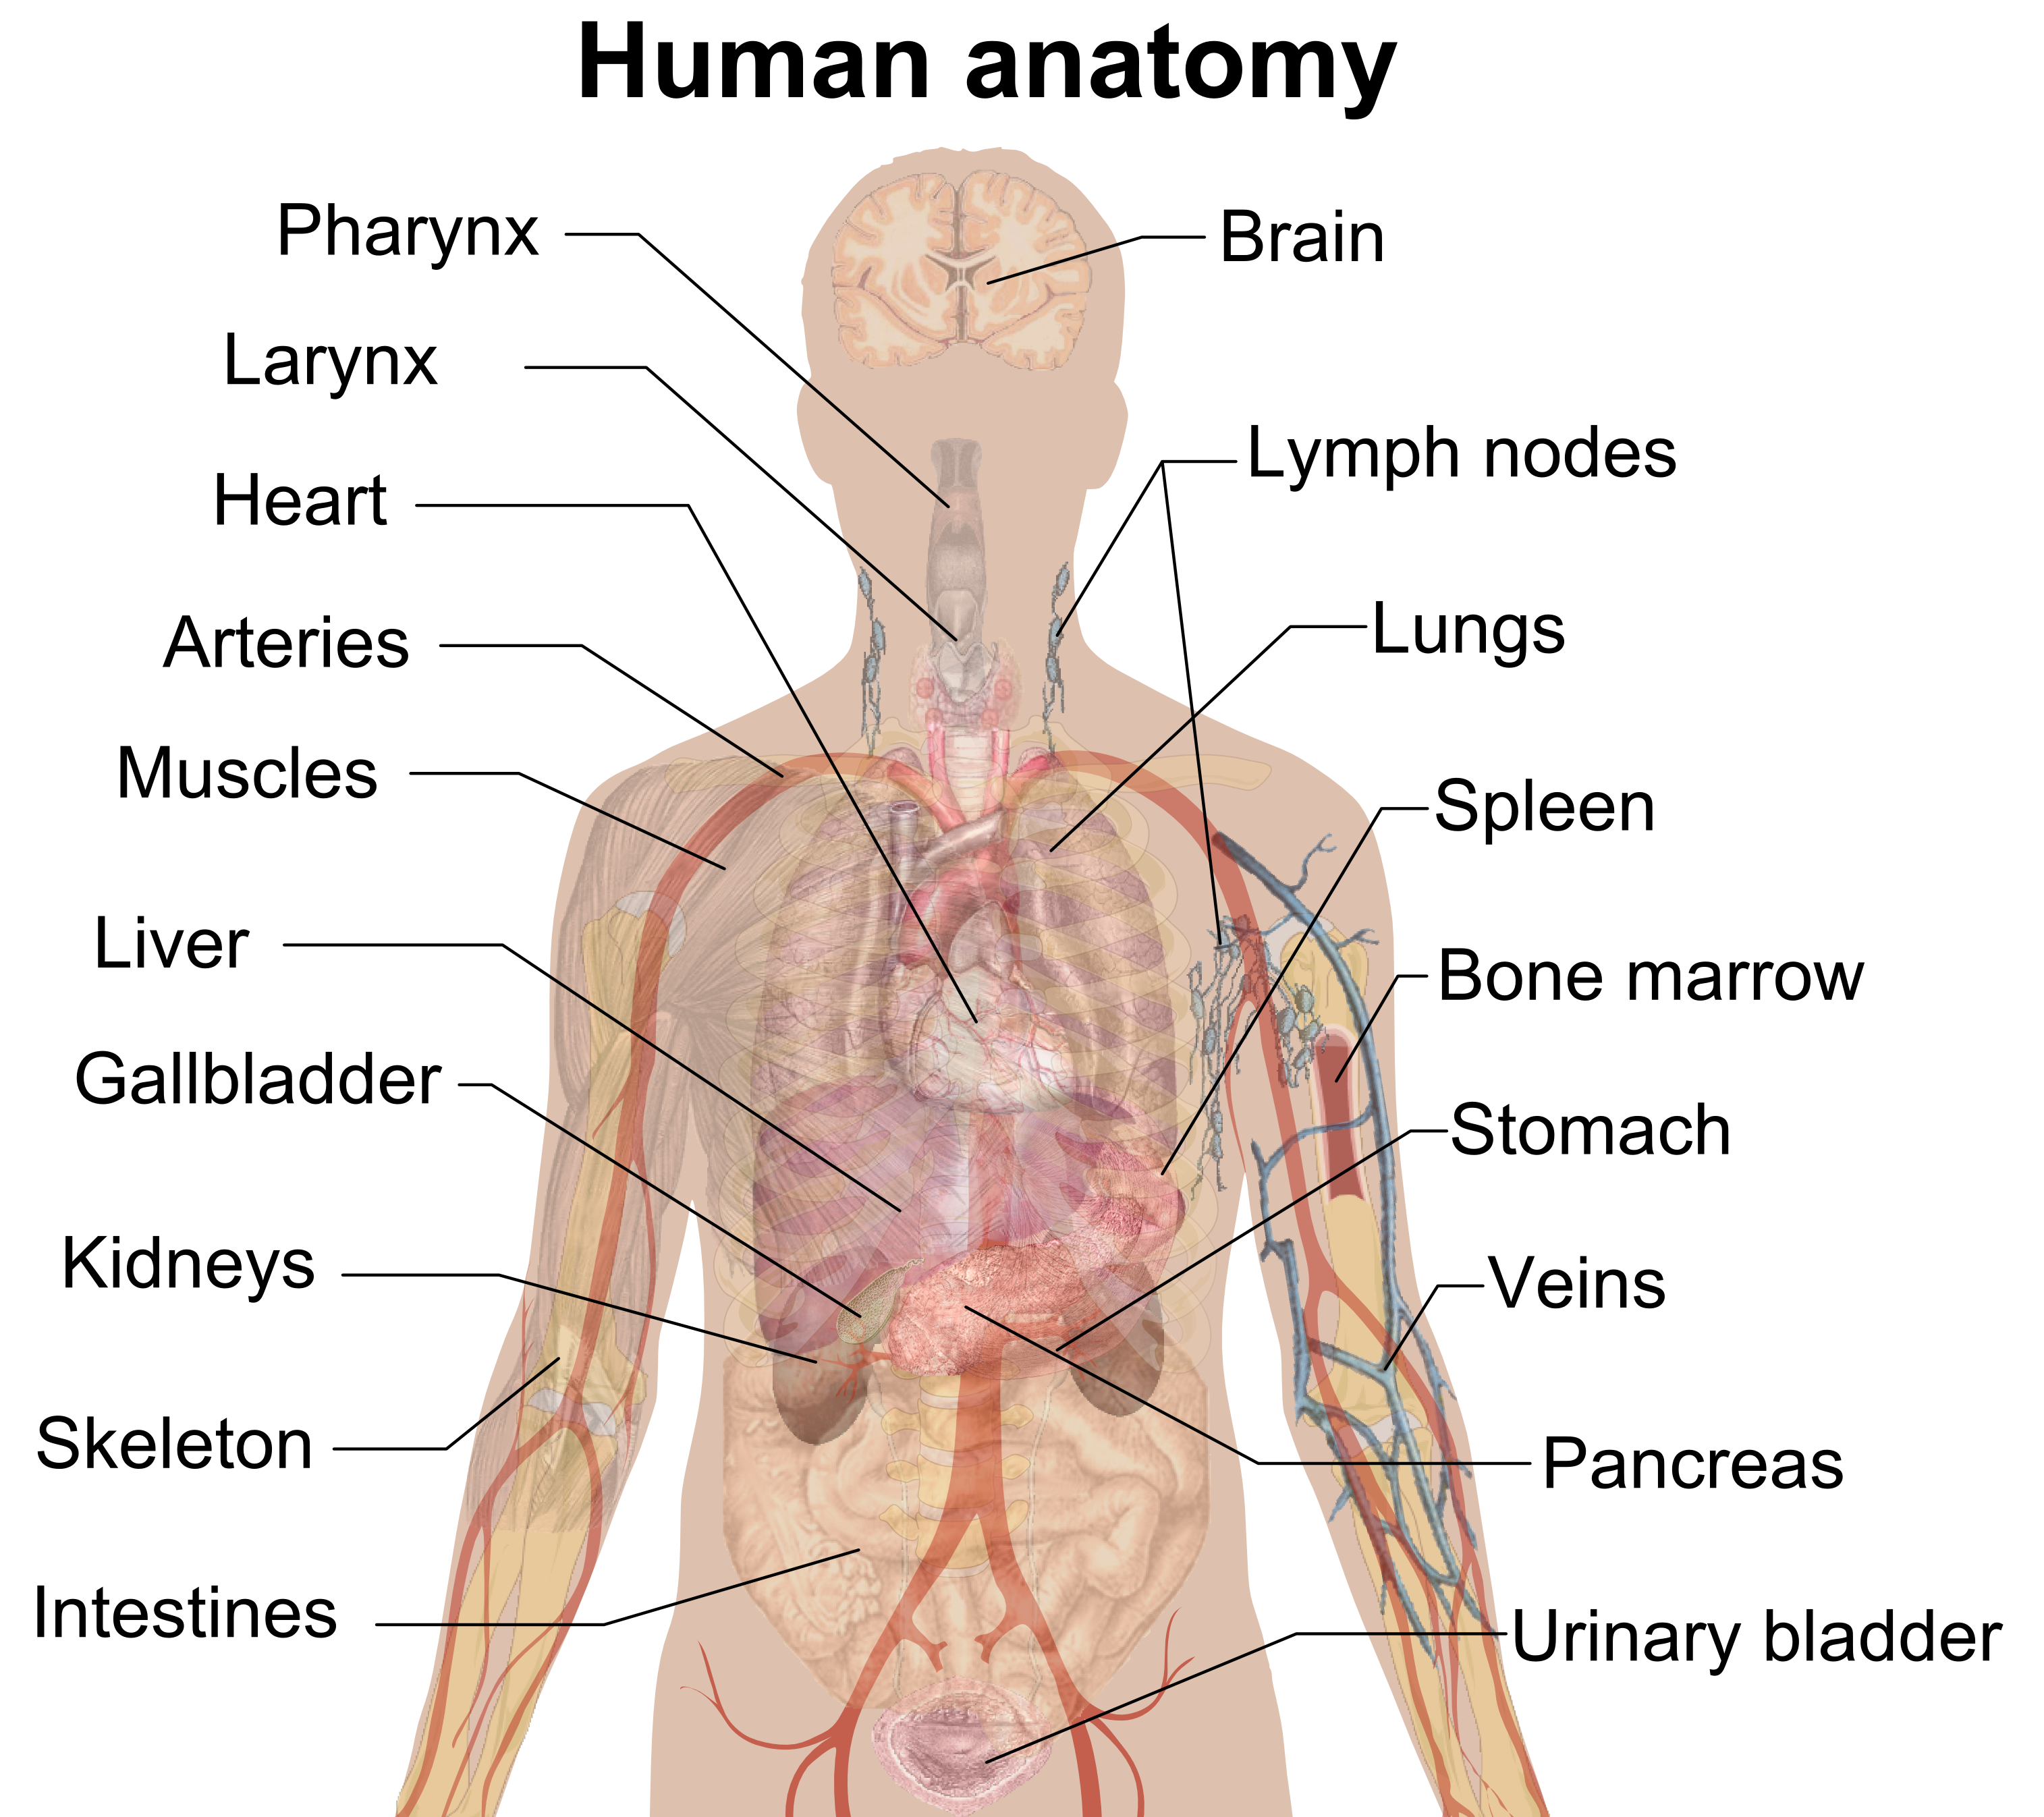 What Do You Learn In Anatomy Images Human Body Anatomy